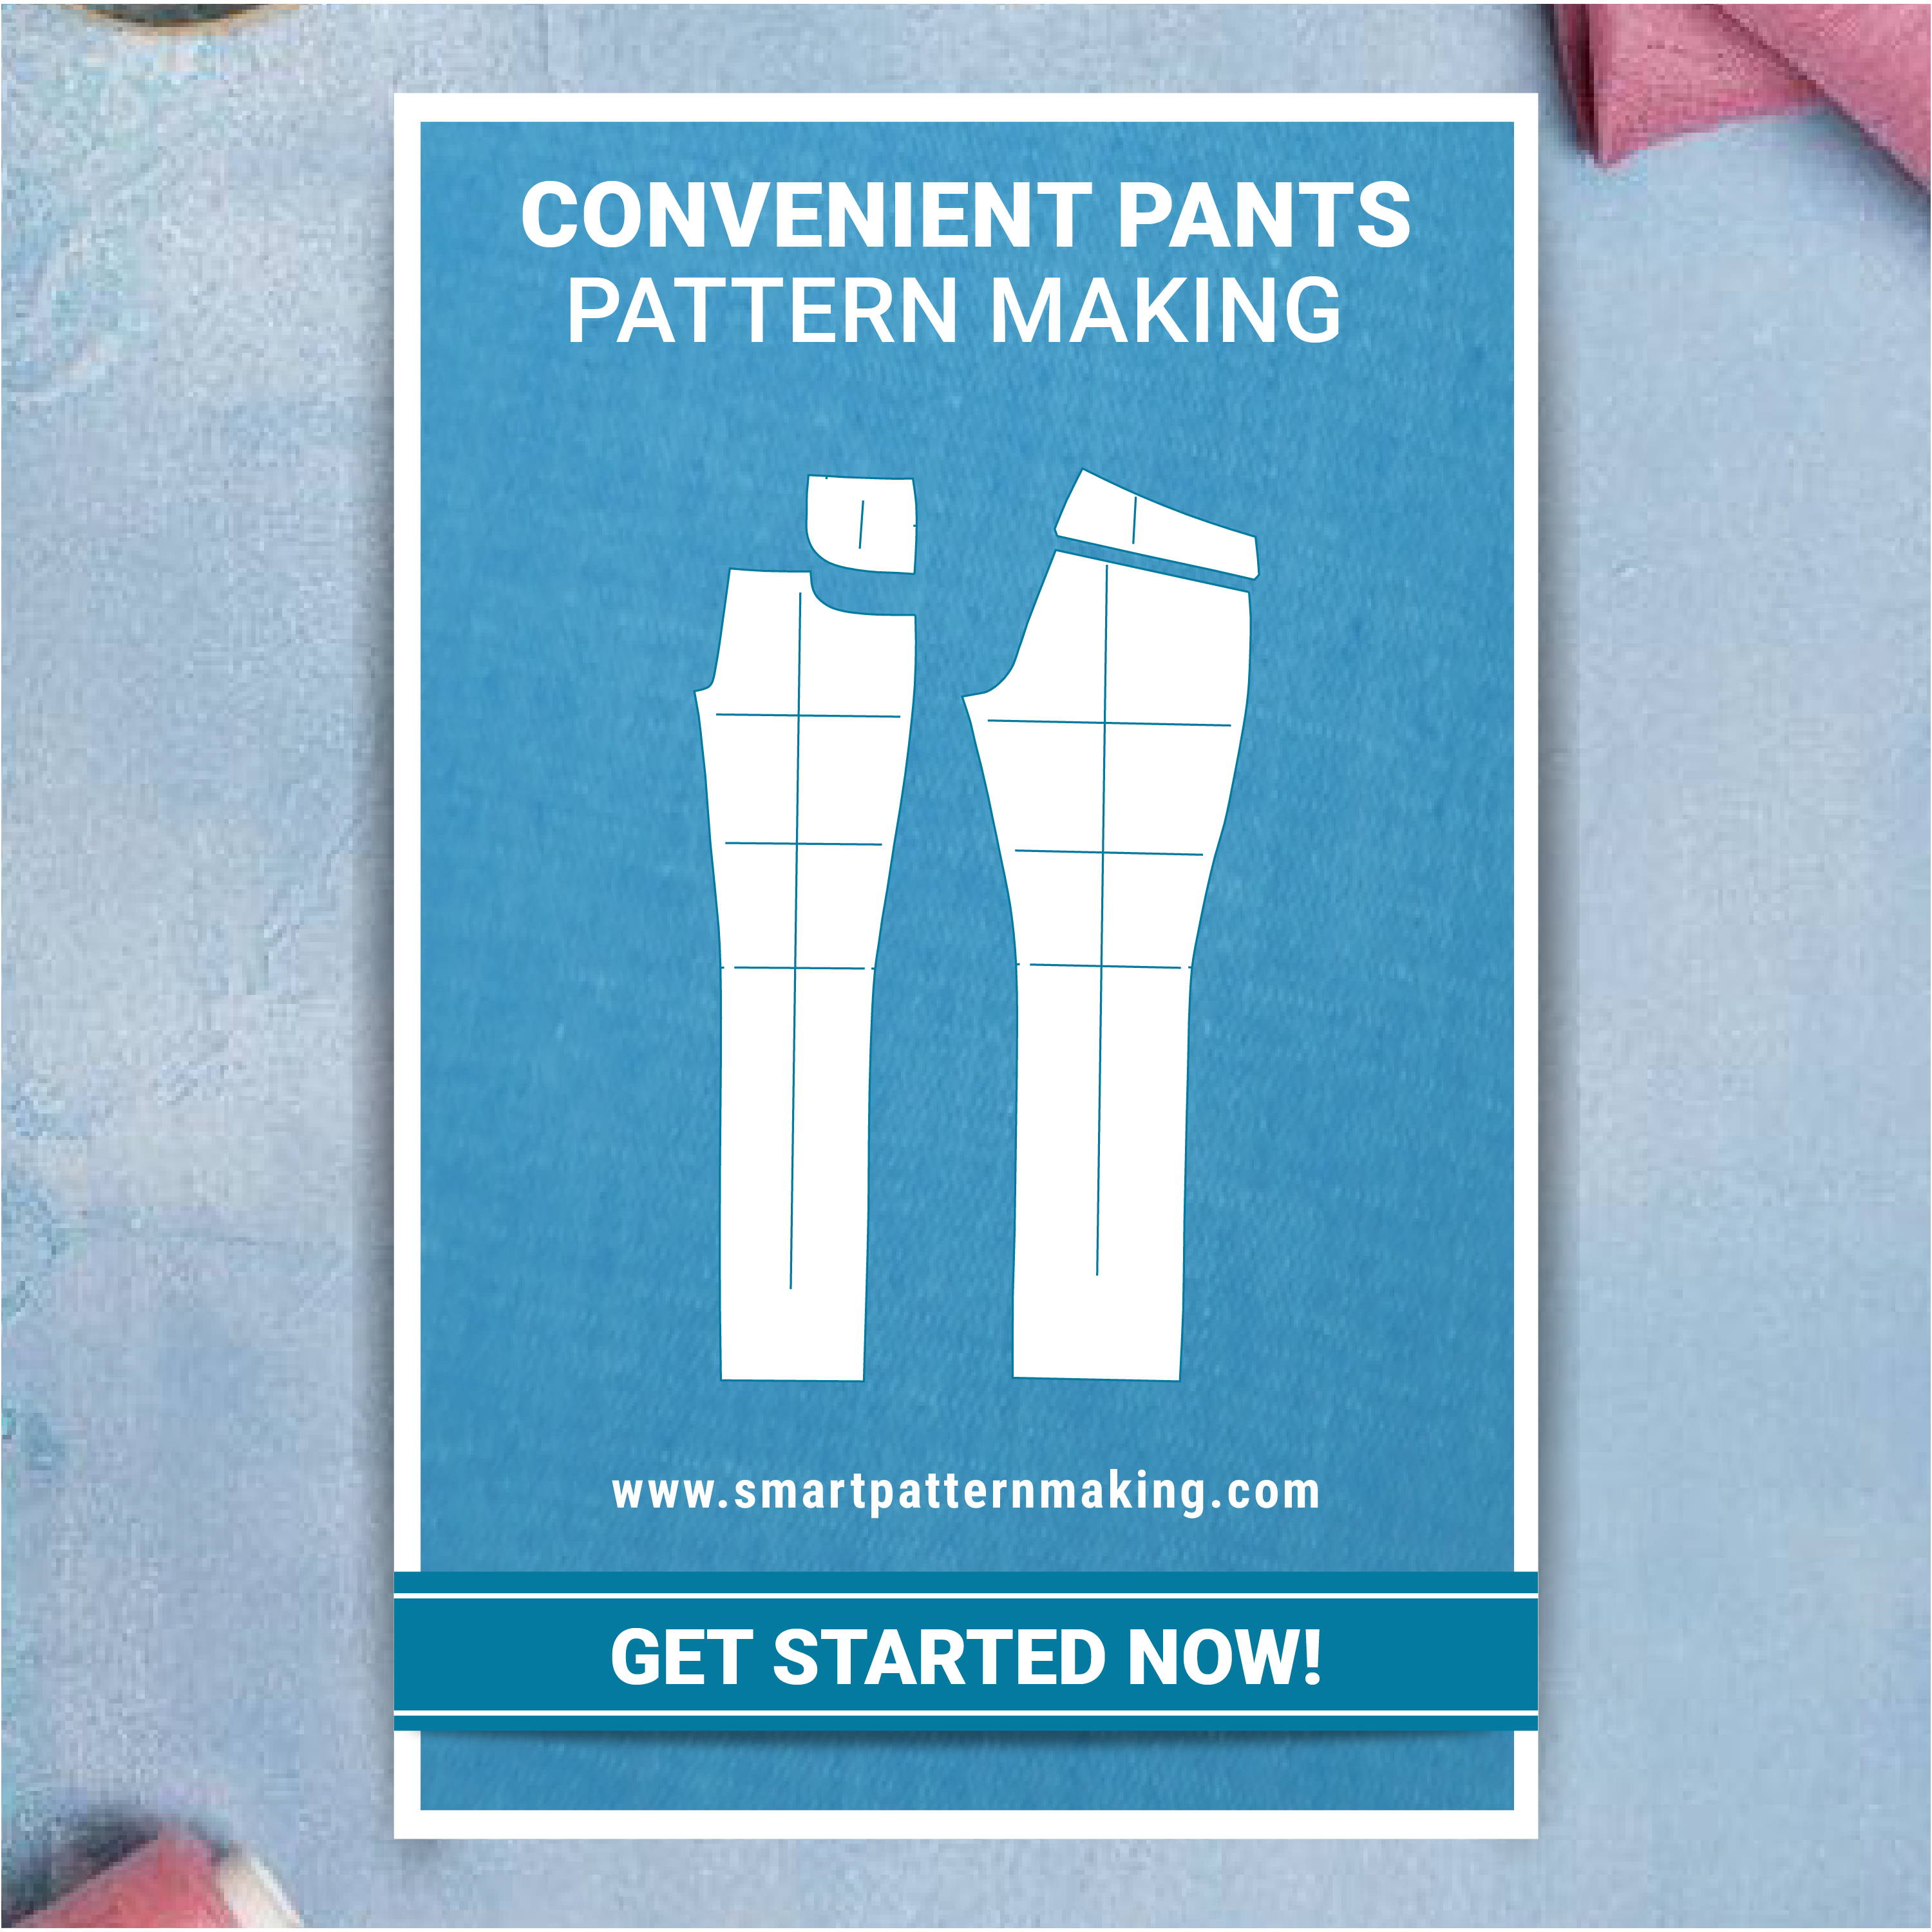 Pattern Making Patterns Services For Apparel Industry